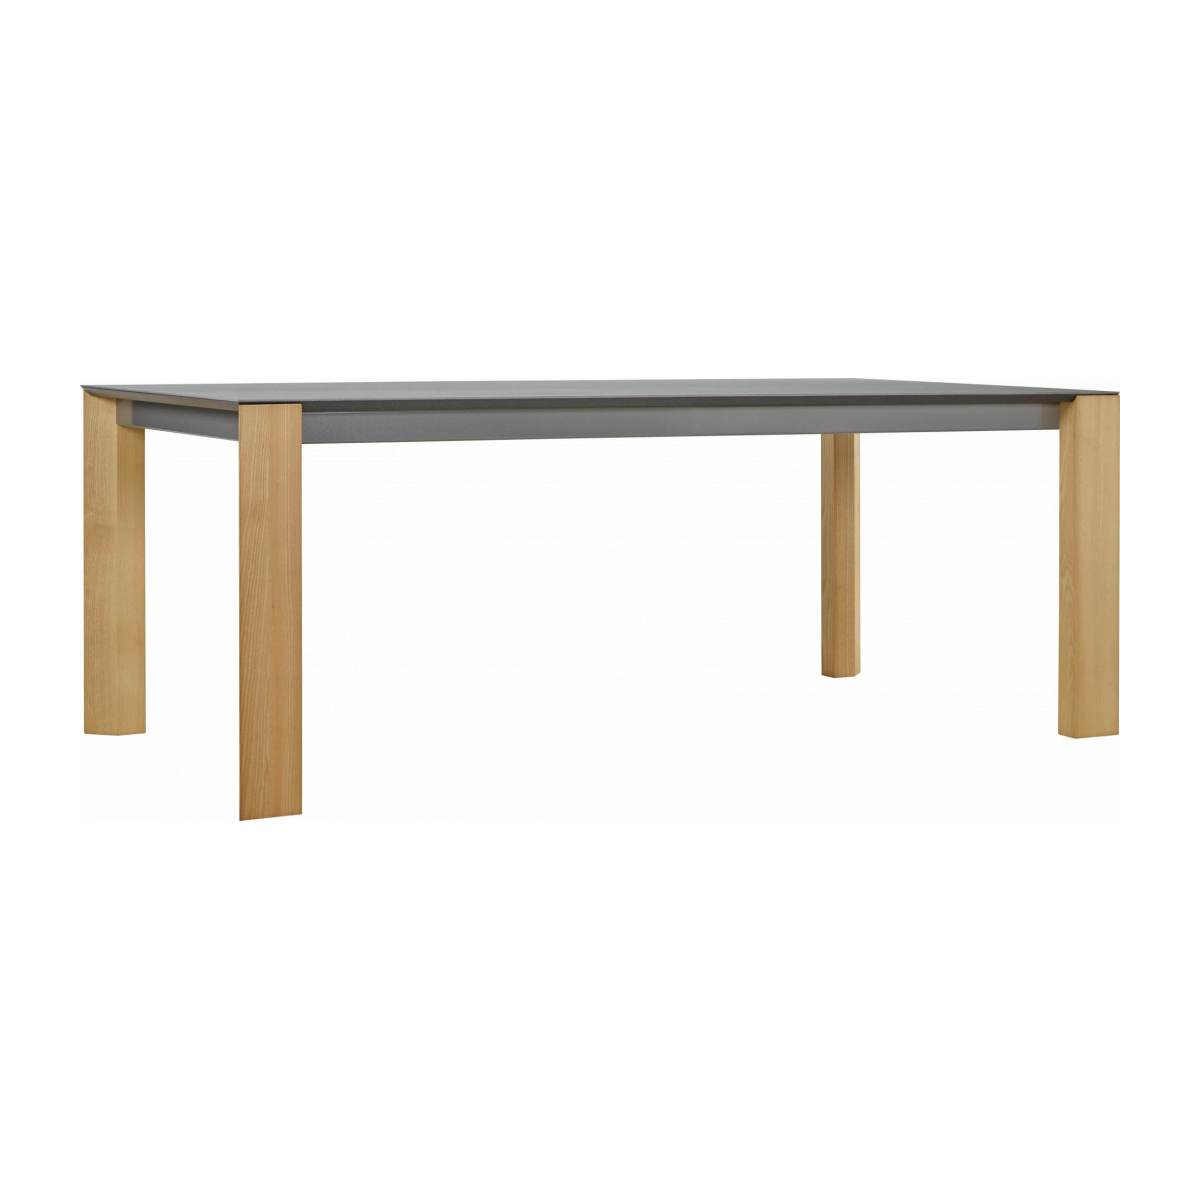 White ceramic dining table 200 cm n°4